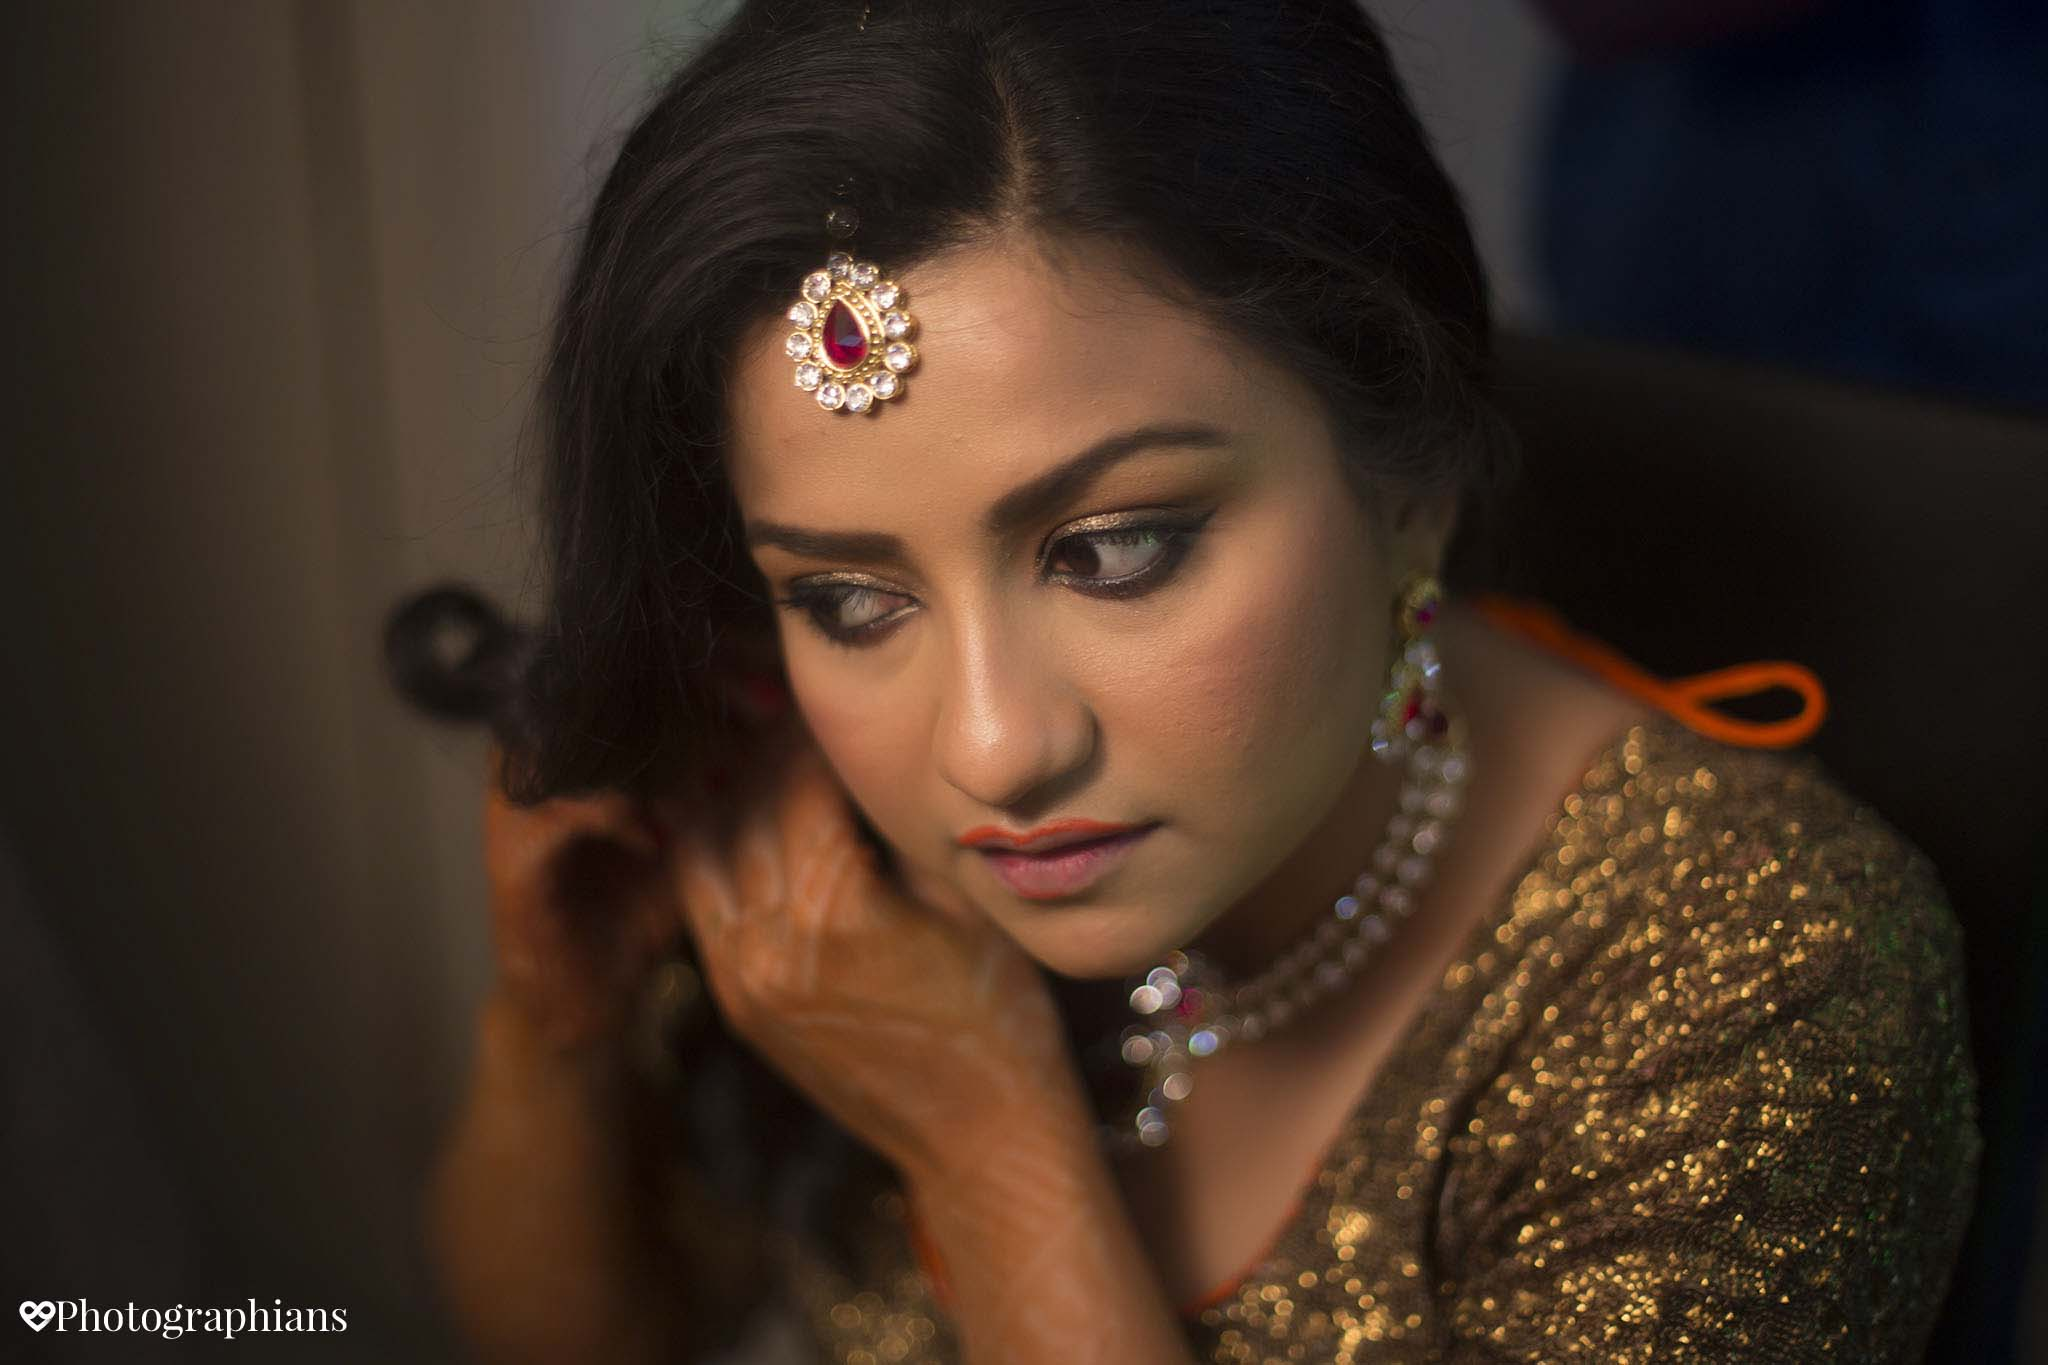 Photographians_Indian_Destination_Wedding_098